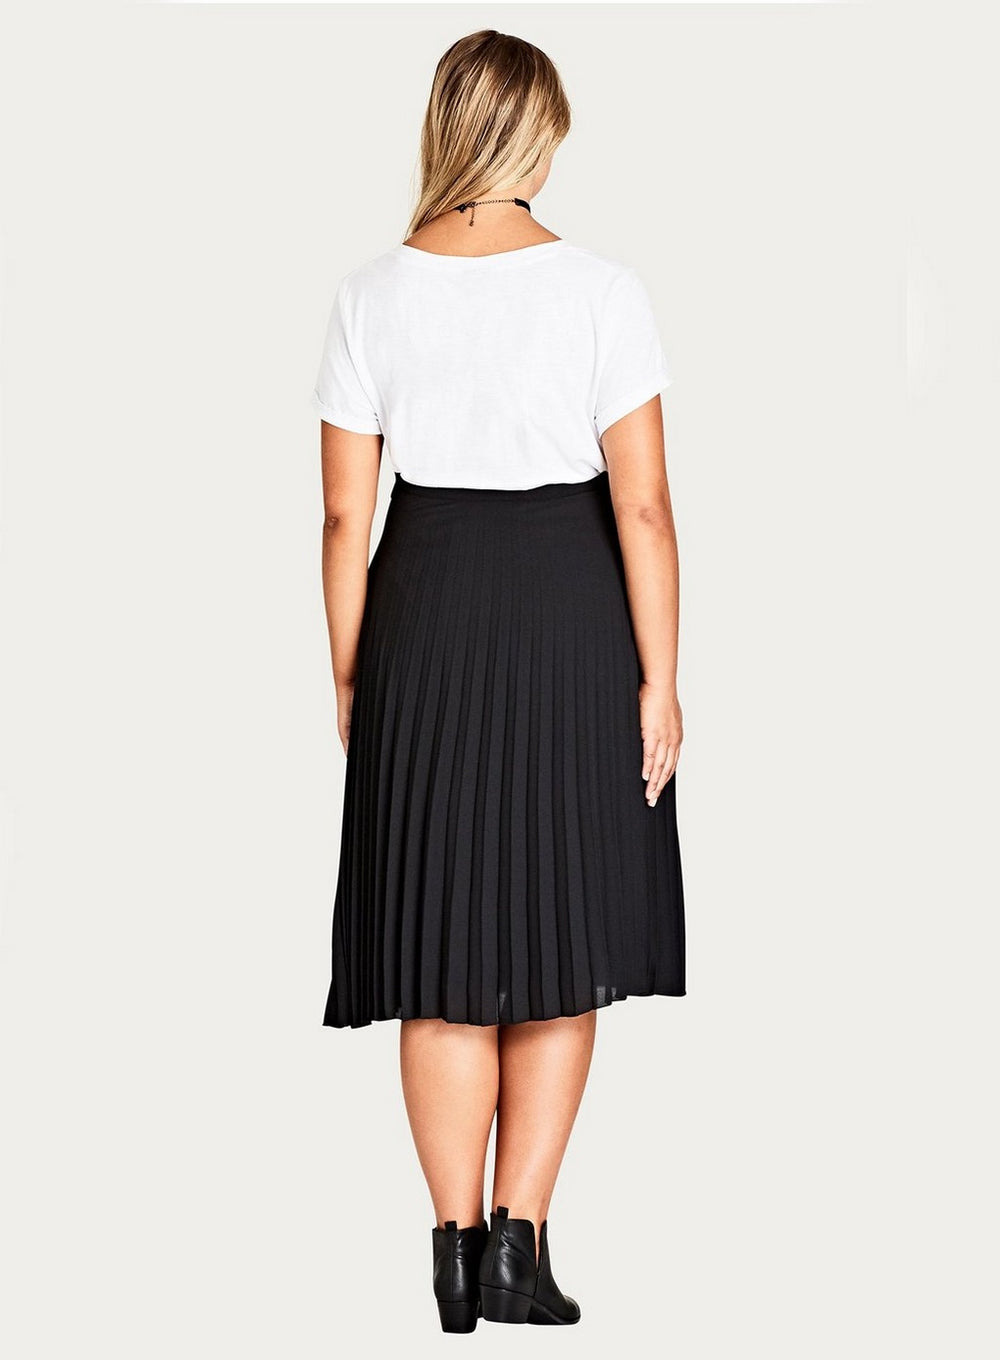 City Chic Black Pleated Skirt